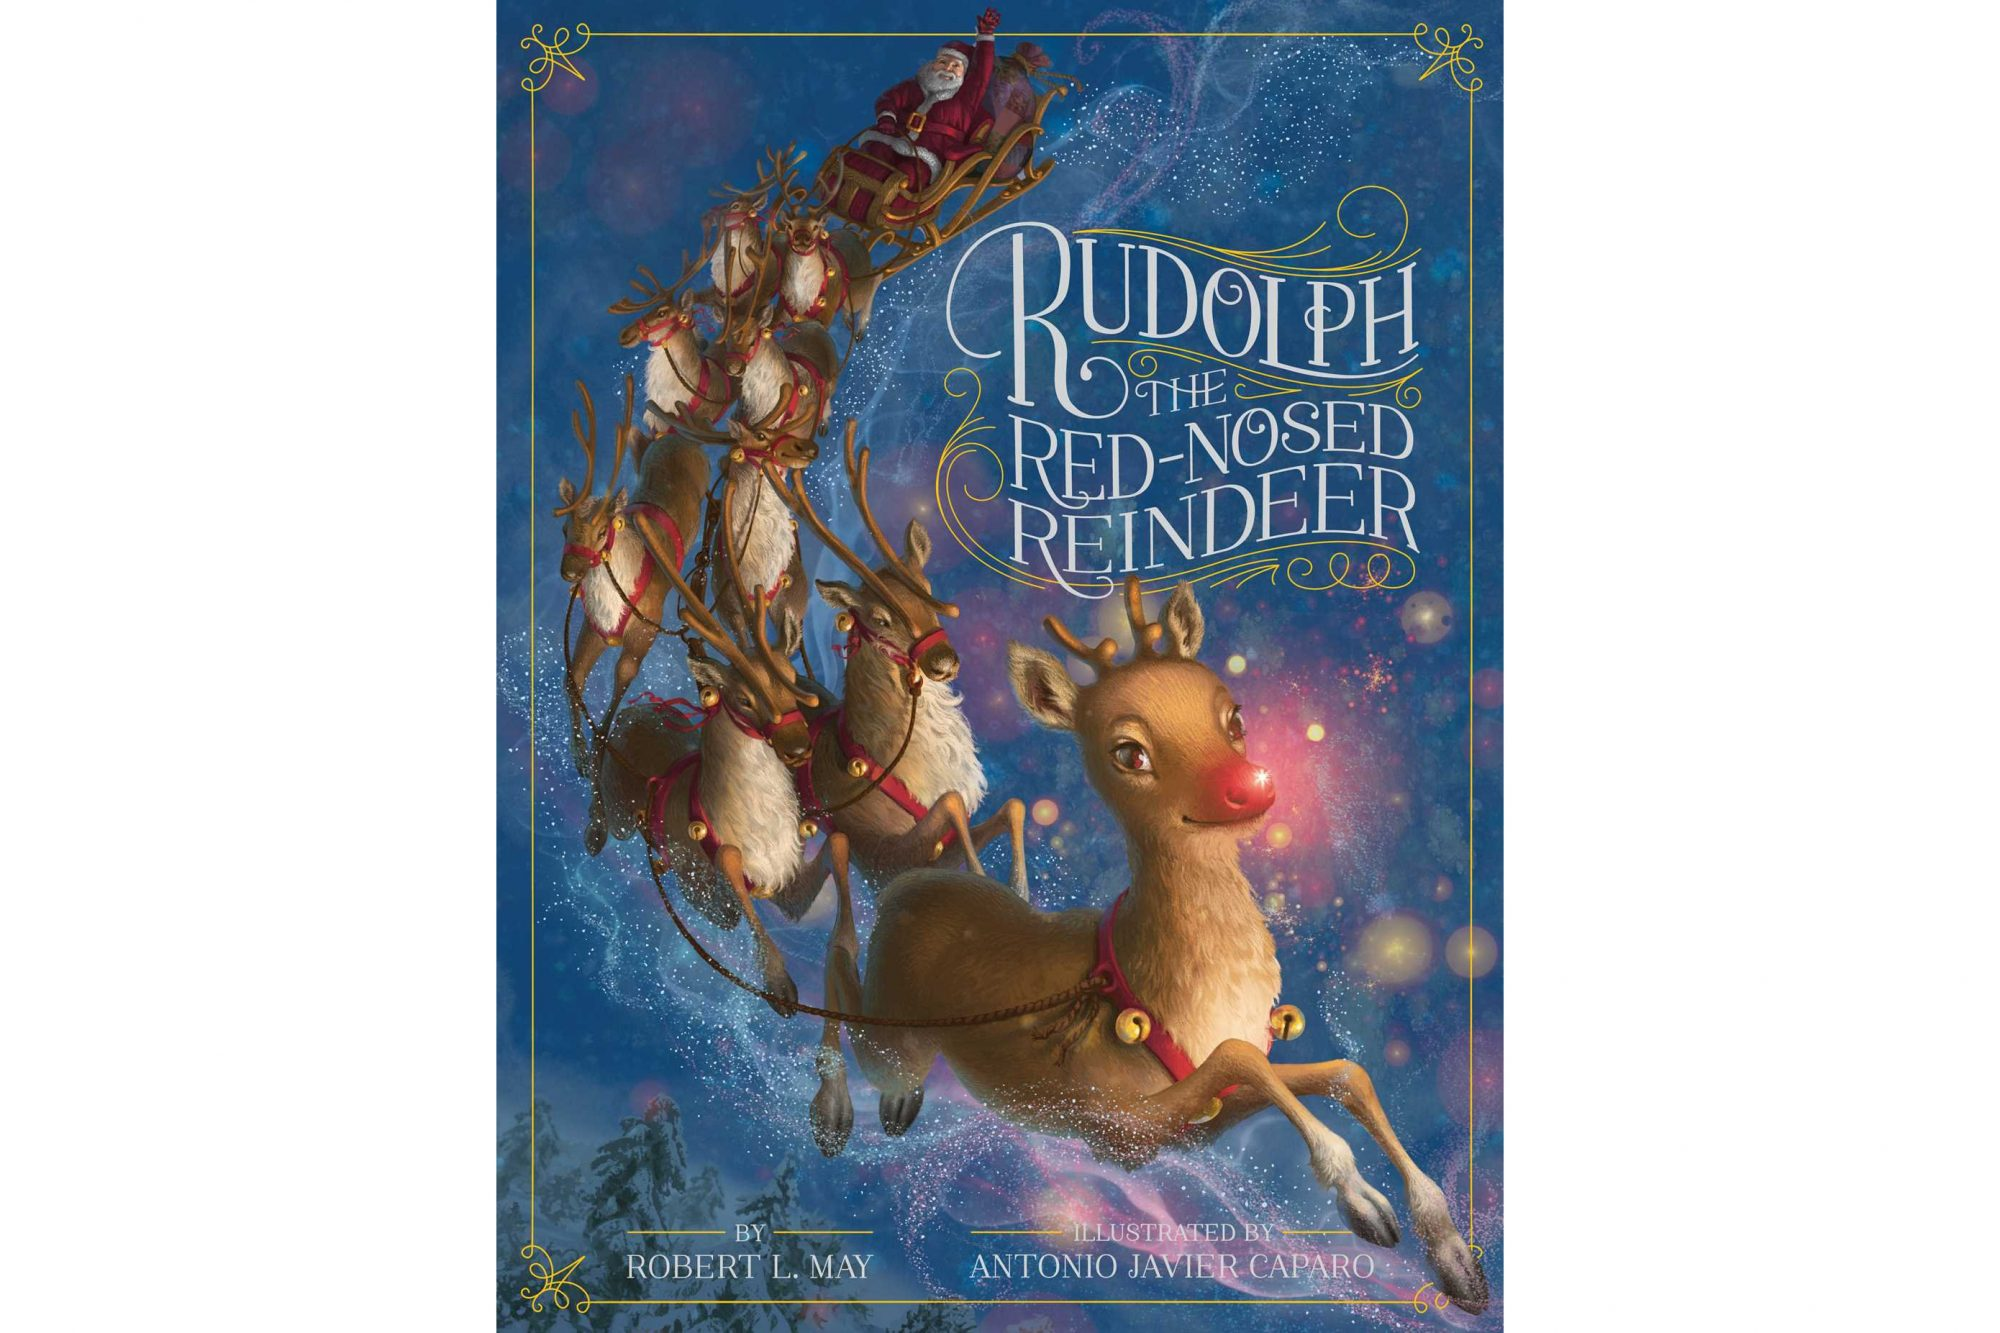 Rudolph the Red-Nosed Reindeer, by Robert L. May